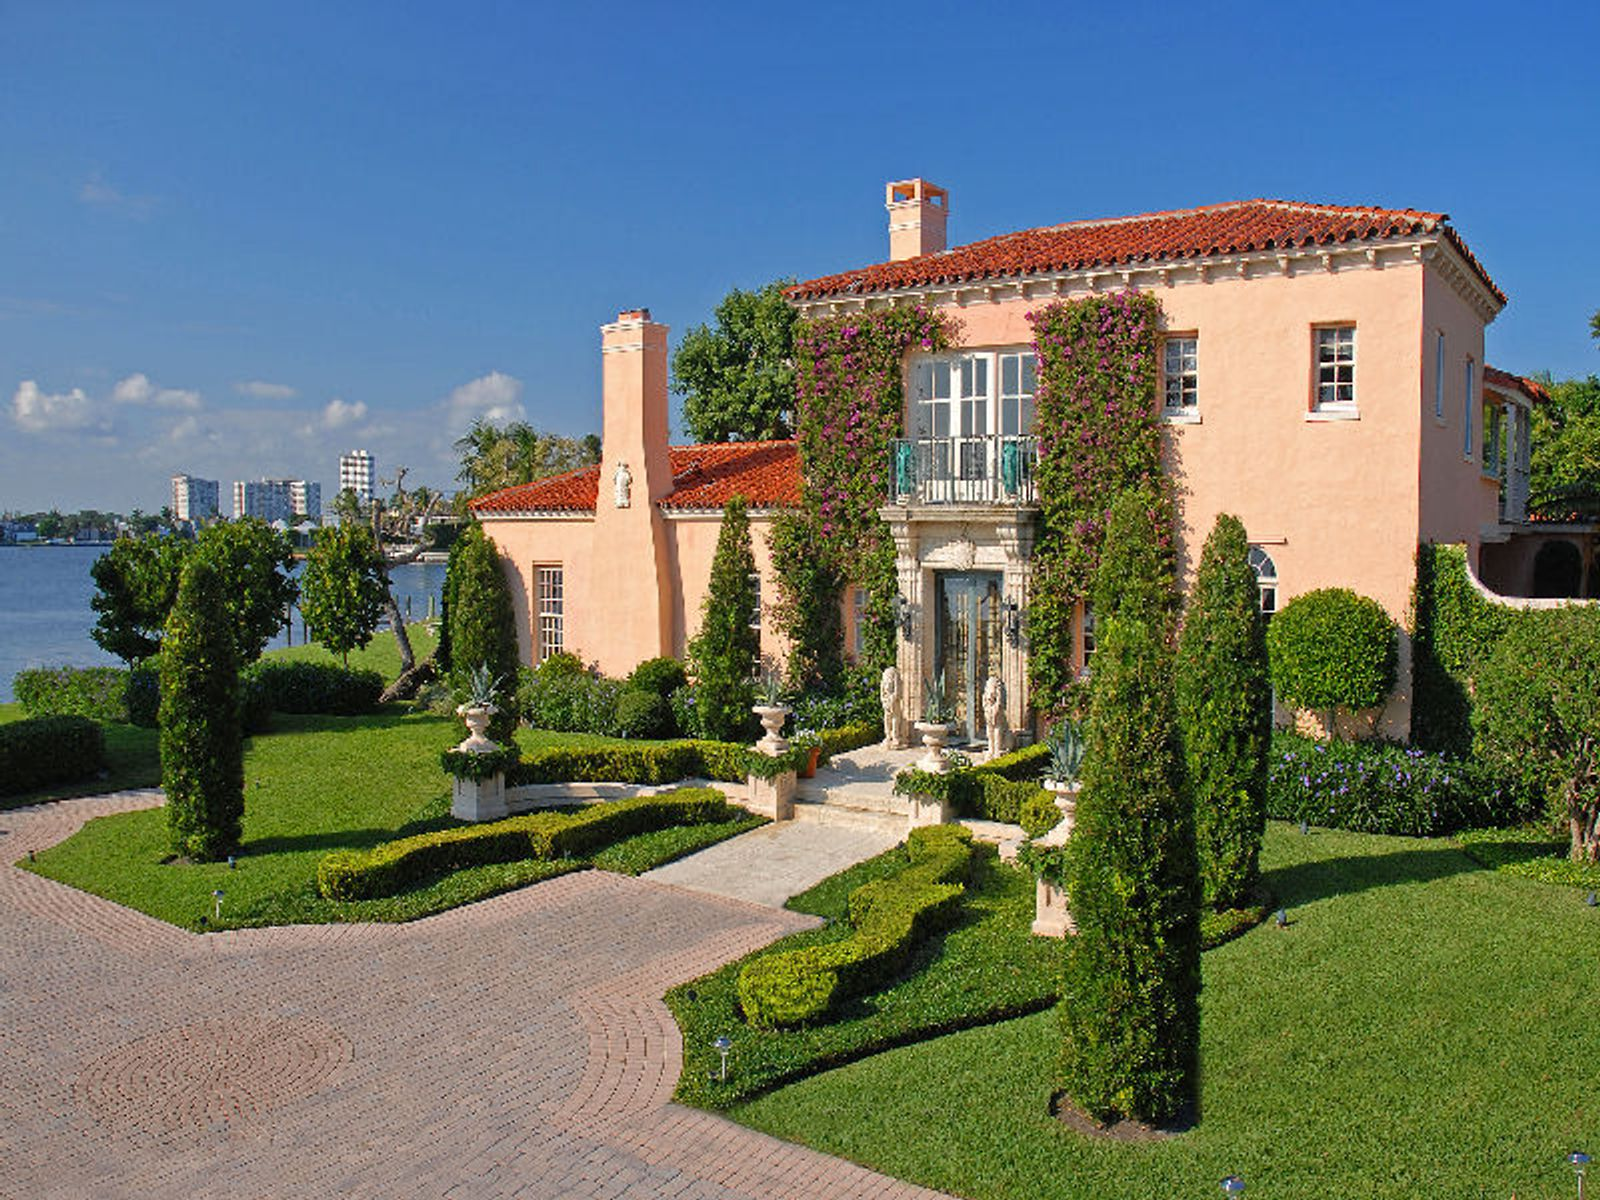 Lakefront Mediterranean, Palm Beach FL Single Family Home - Palm Beach Real Estate